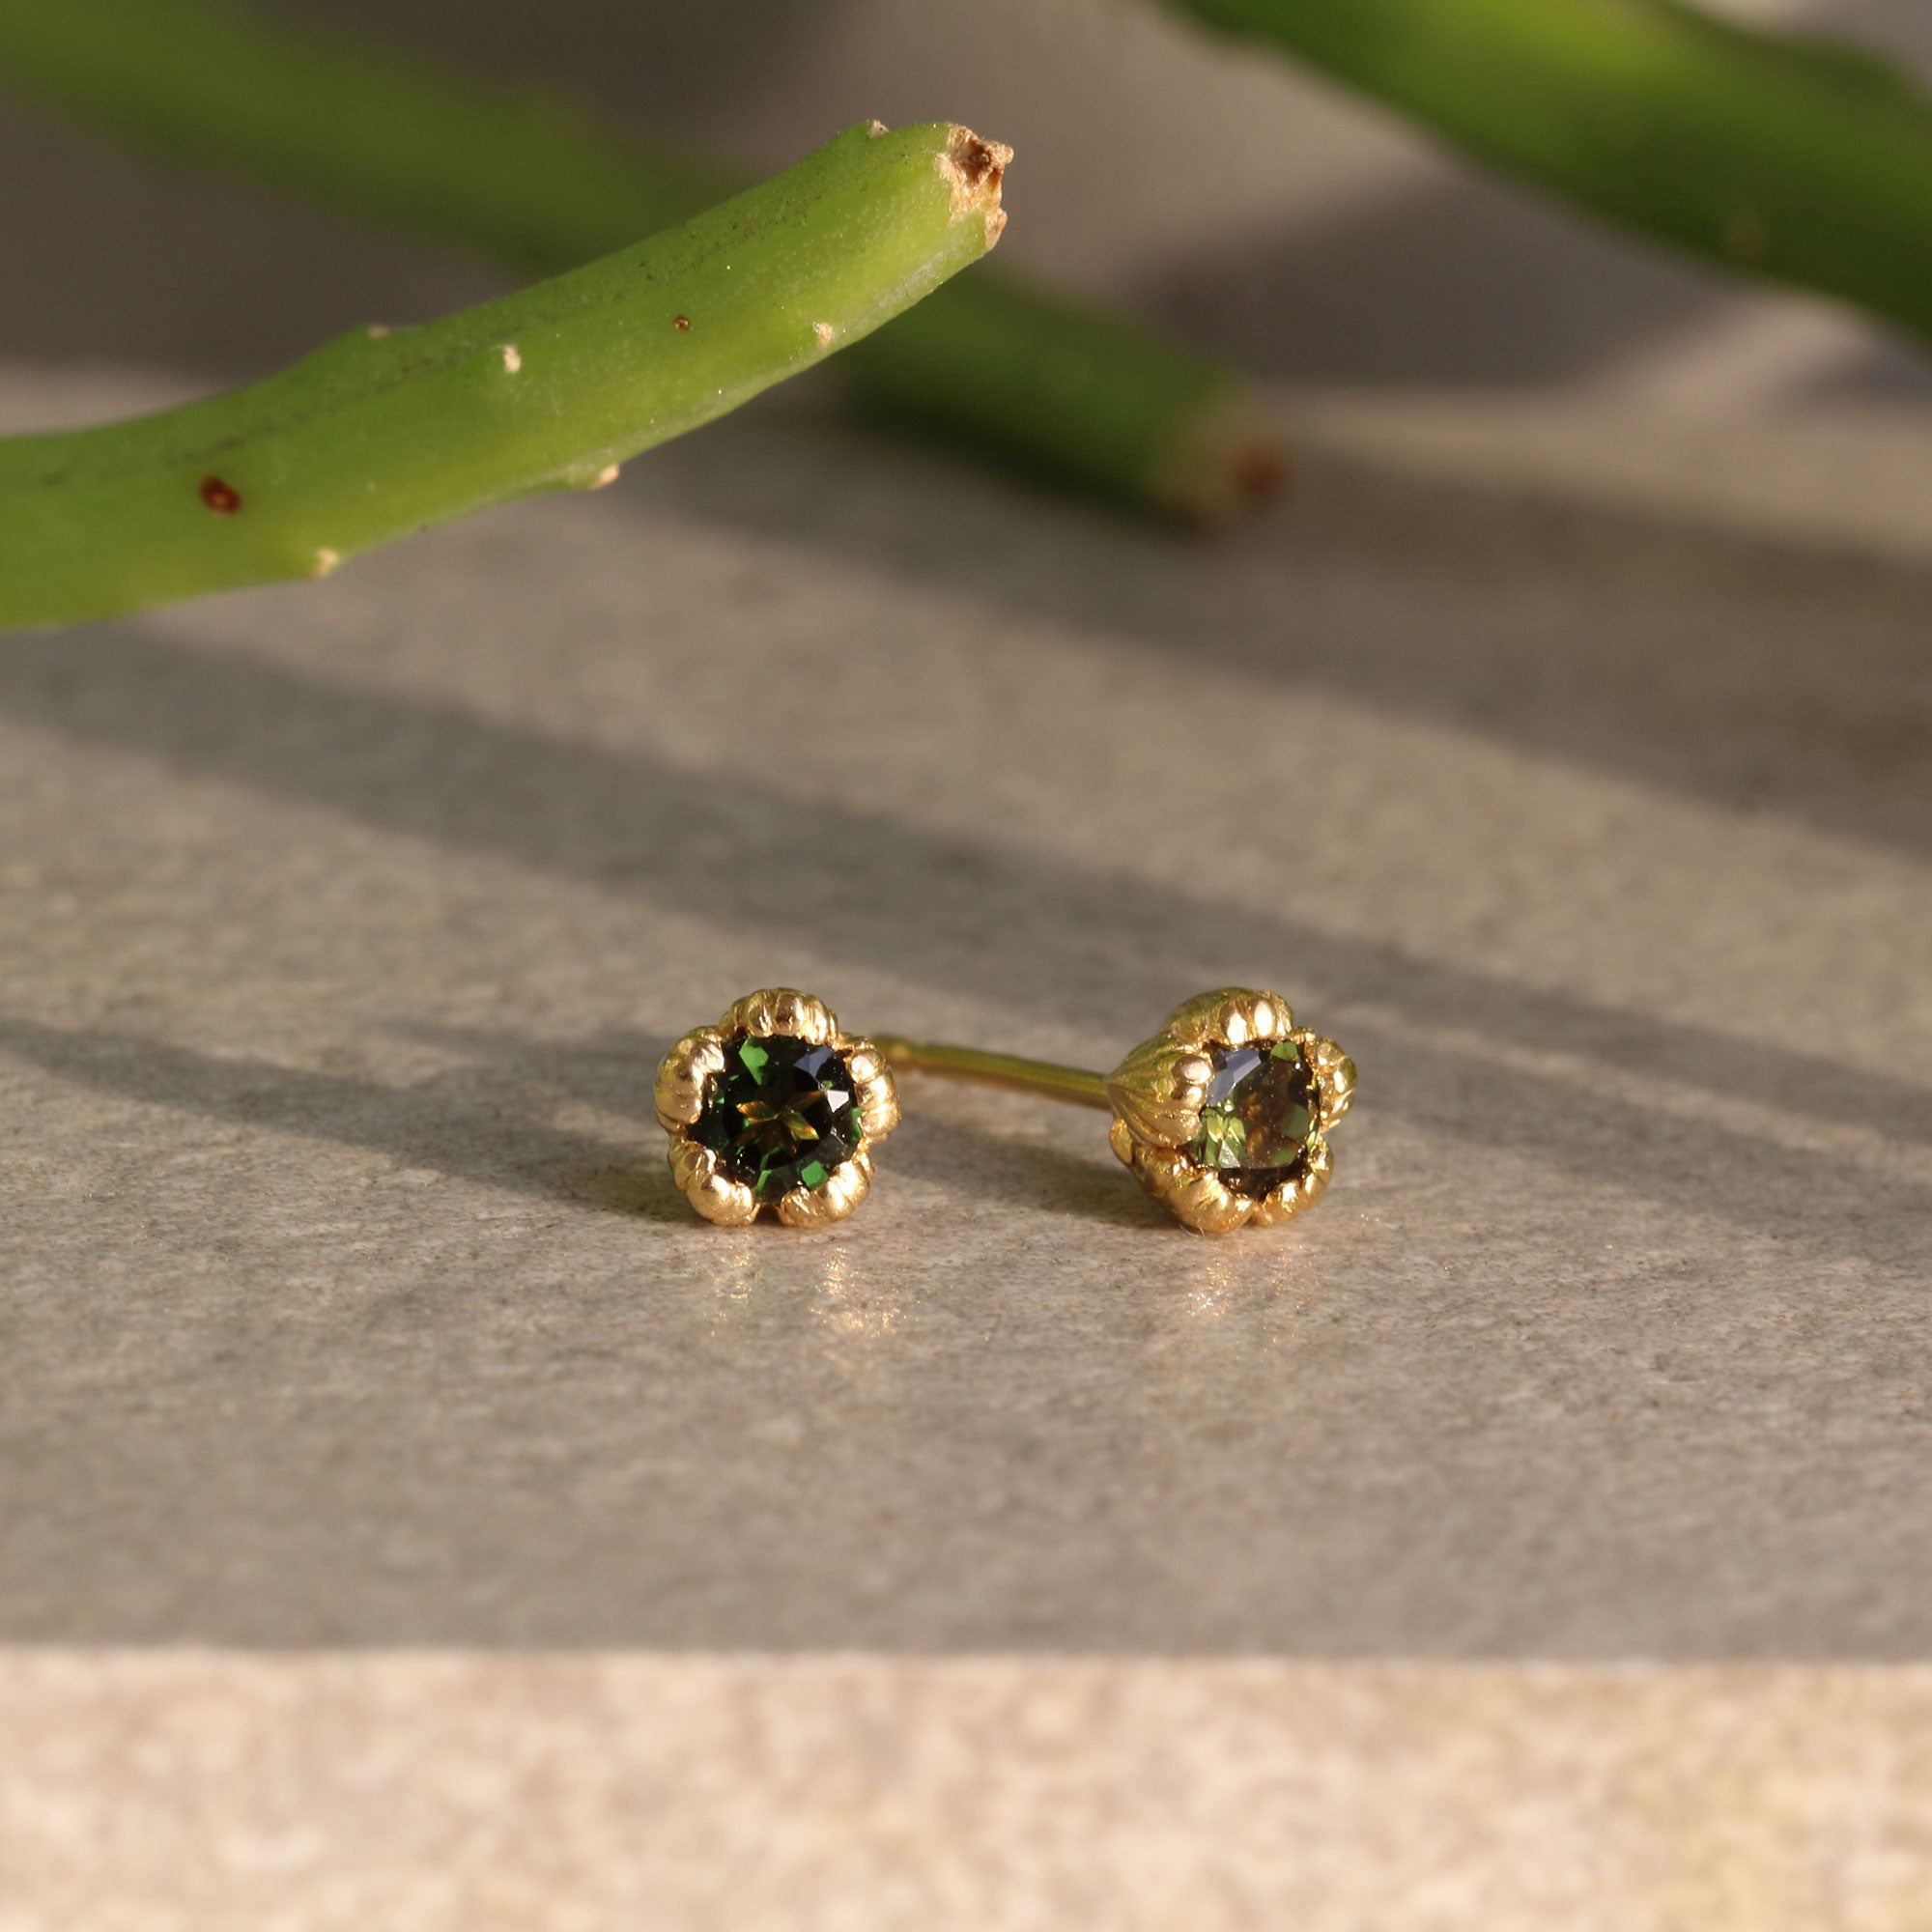 Villa Yellow Gold and Green Tourmaline Stud Earrings